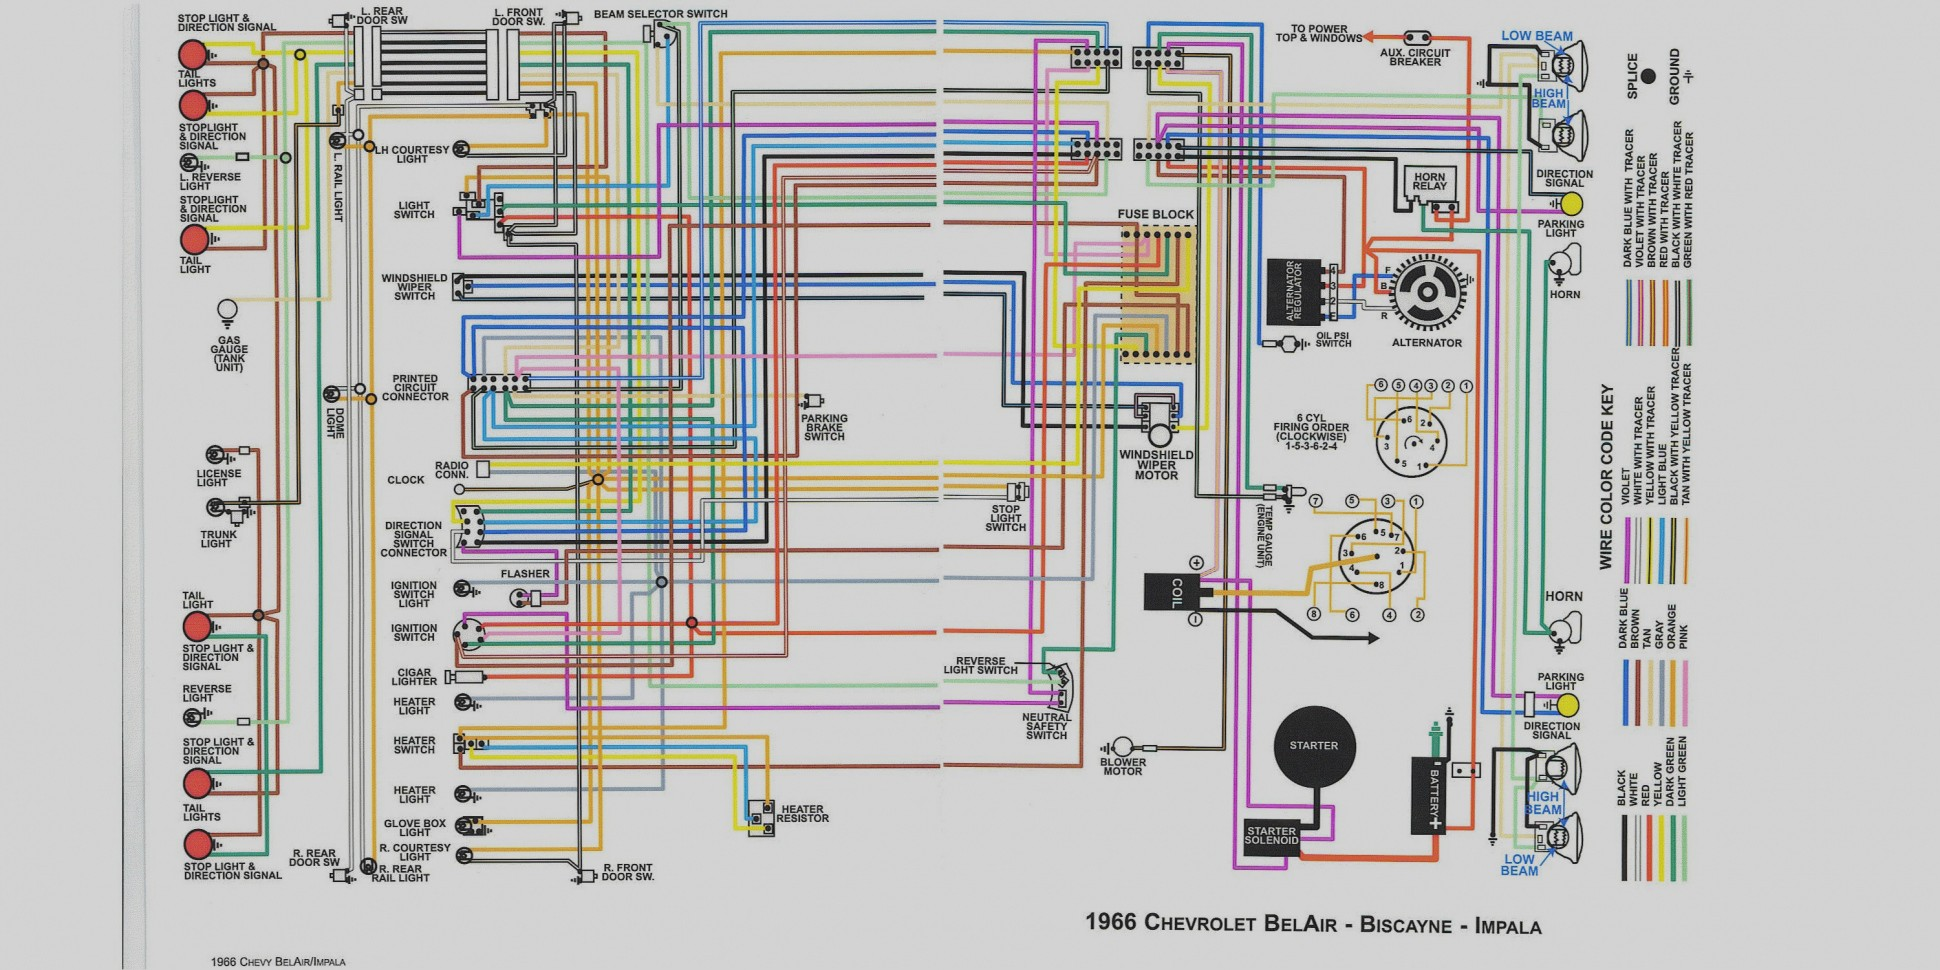 70 chevelle wiring harness junction block diagram dd 9320  1969 gto wiring diagram get free image about wiring diagram  1969 gto wiring diagram get free image